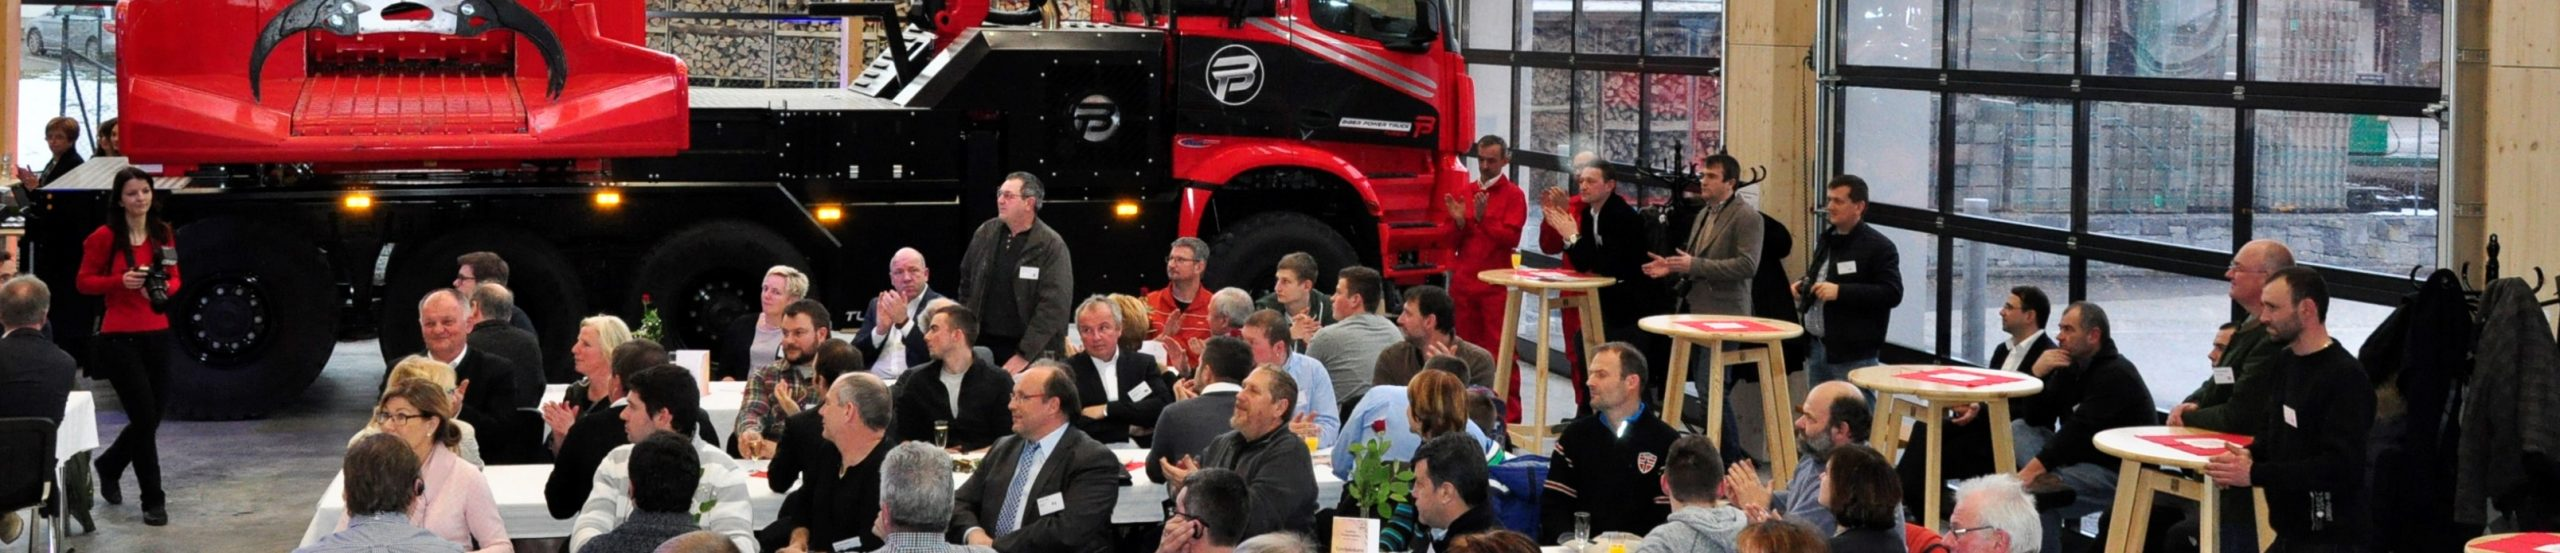 60 years: Eschlböck celebrates its anniversery and presents a new chipper generation